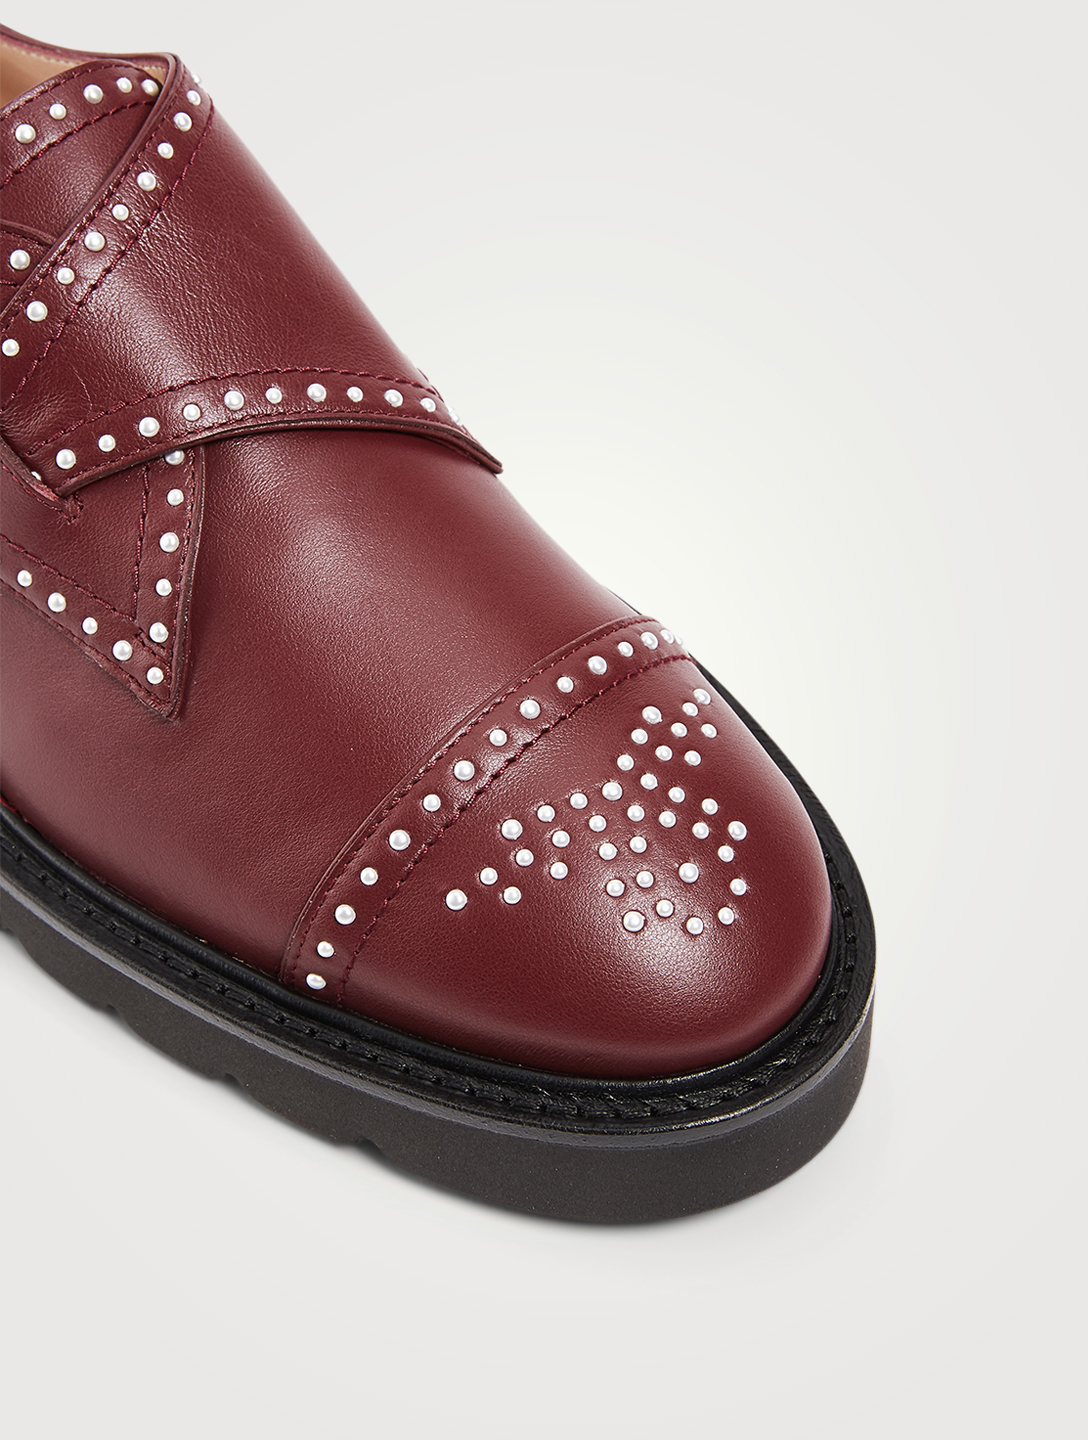 STUART WEITZMAN Jackson Lift Leather Shoes With Pearl Studs Women's Red